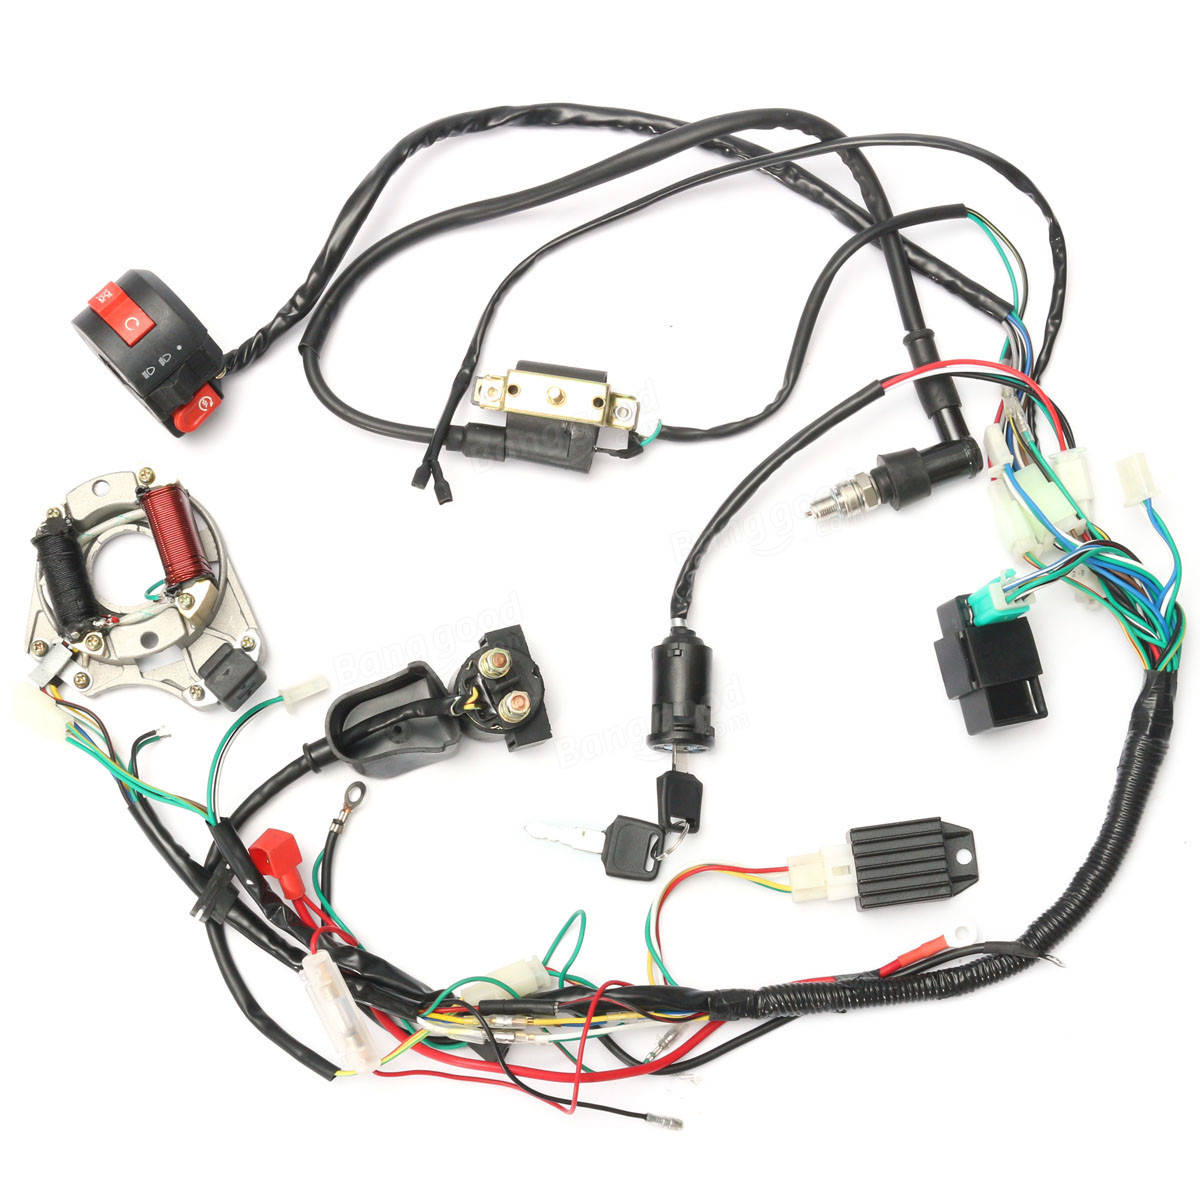 110 Panther Wiring Diagram 50cc 70cc 90cc 110cc Cdi Wire Harness Assembly Wiring Kit